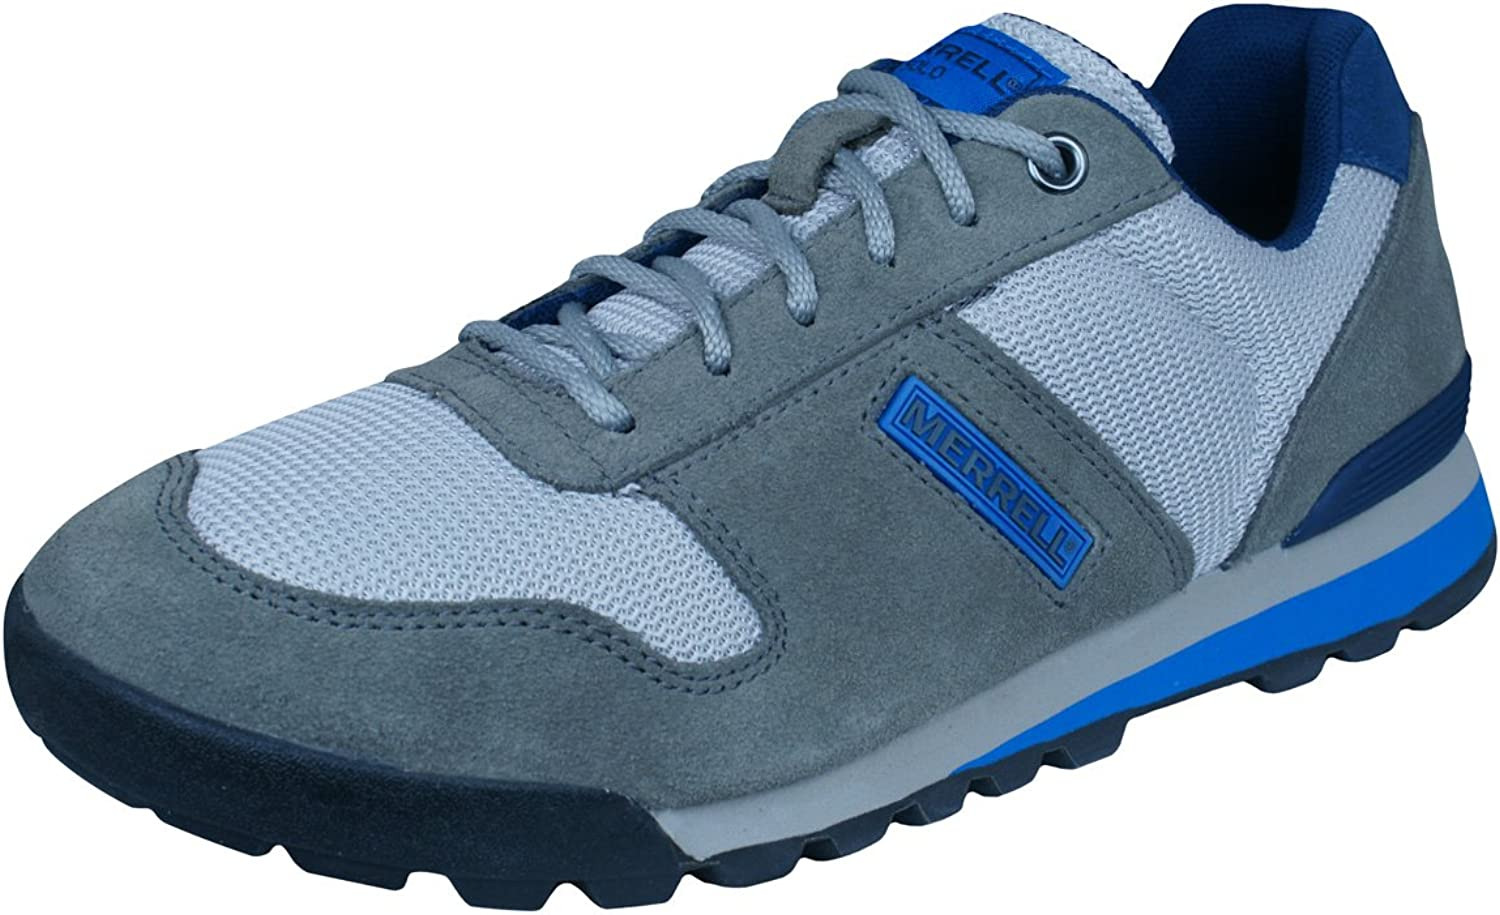 49305 Merrell Men's Solo Hiking shoes